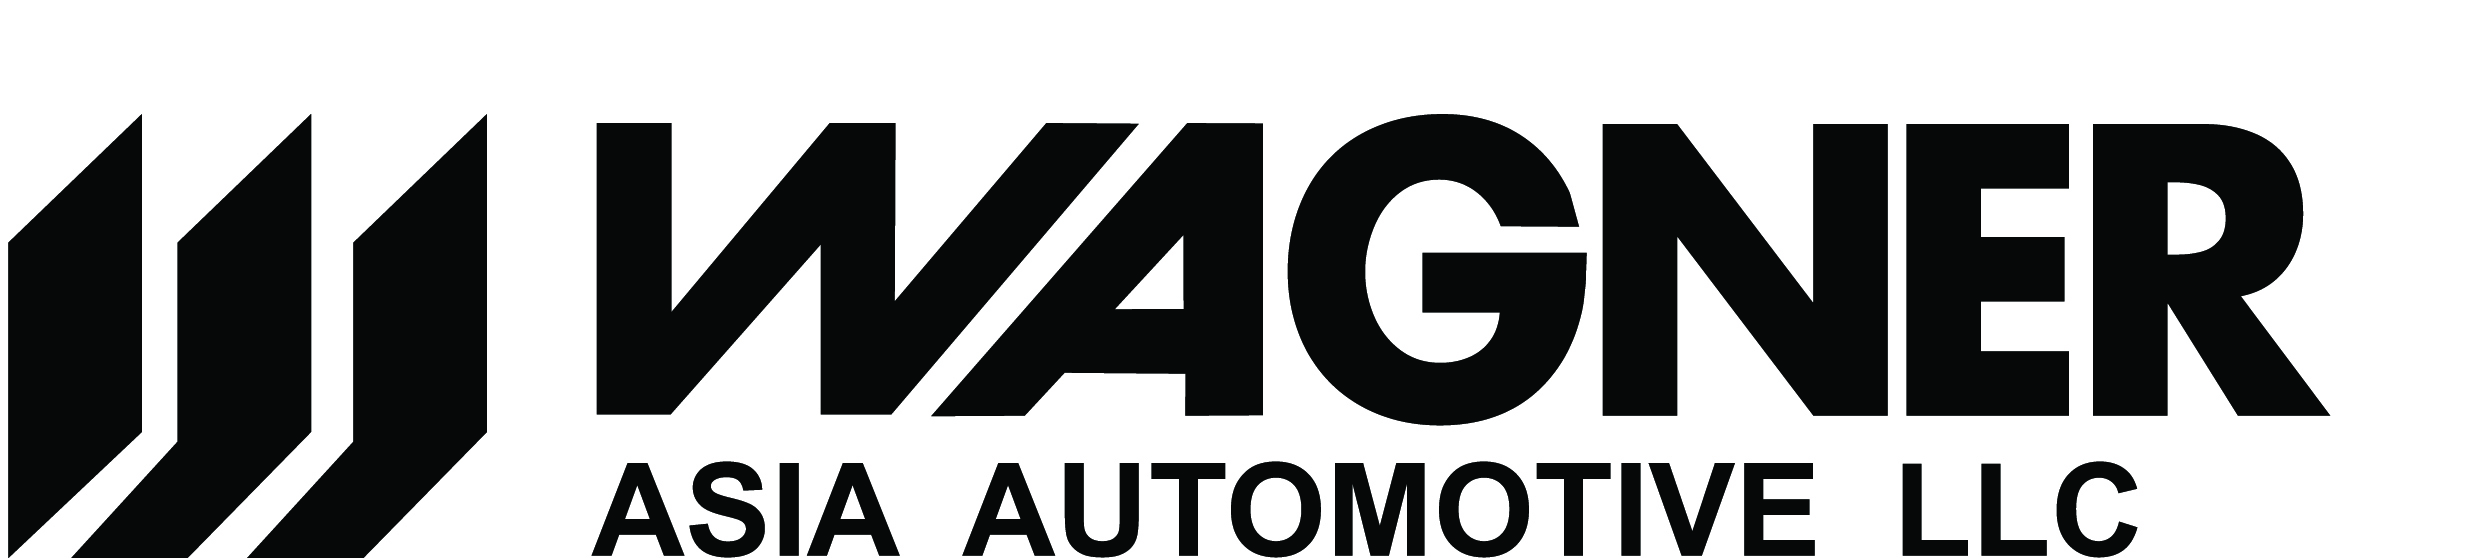 Wagner Asia Automotive